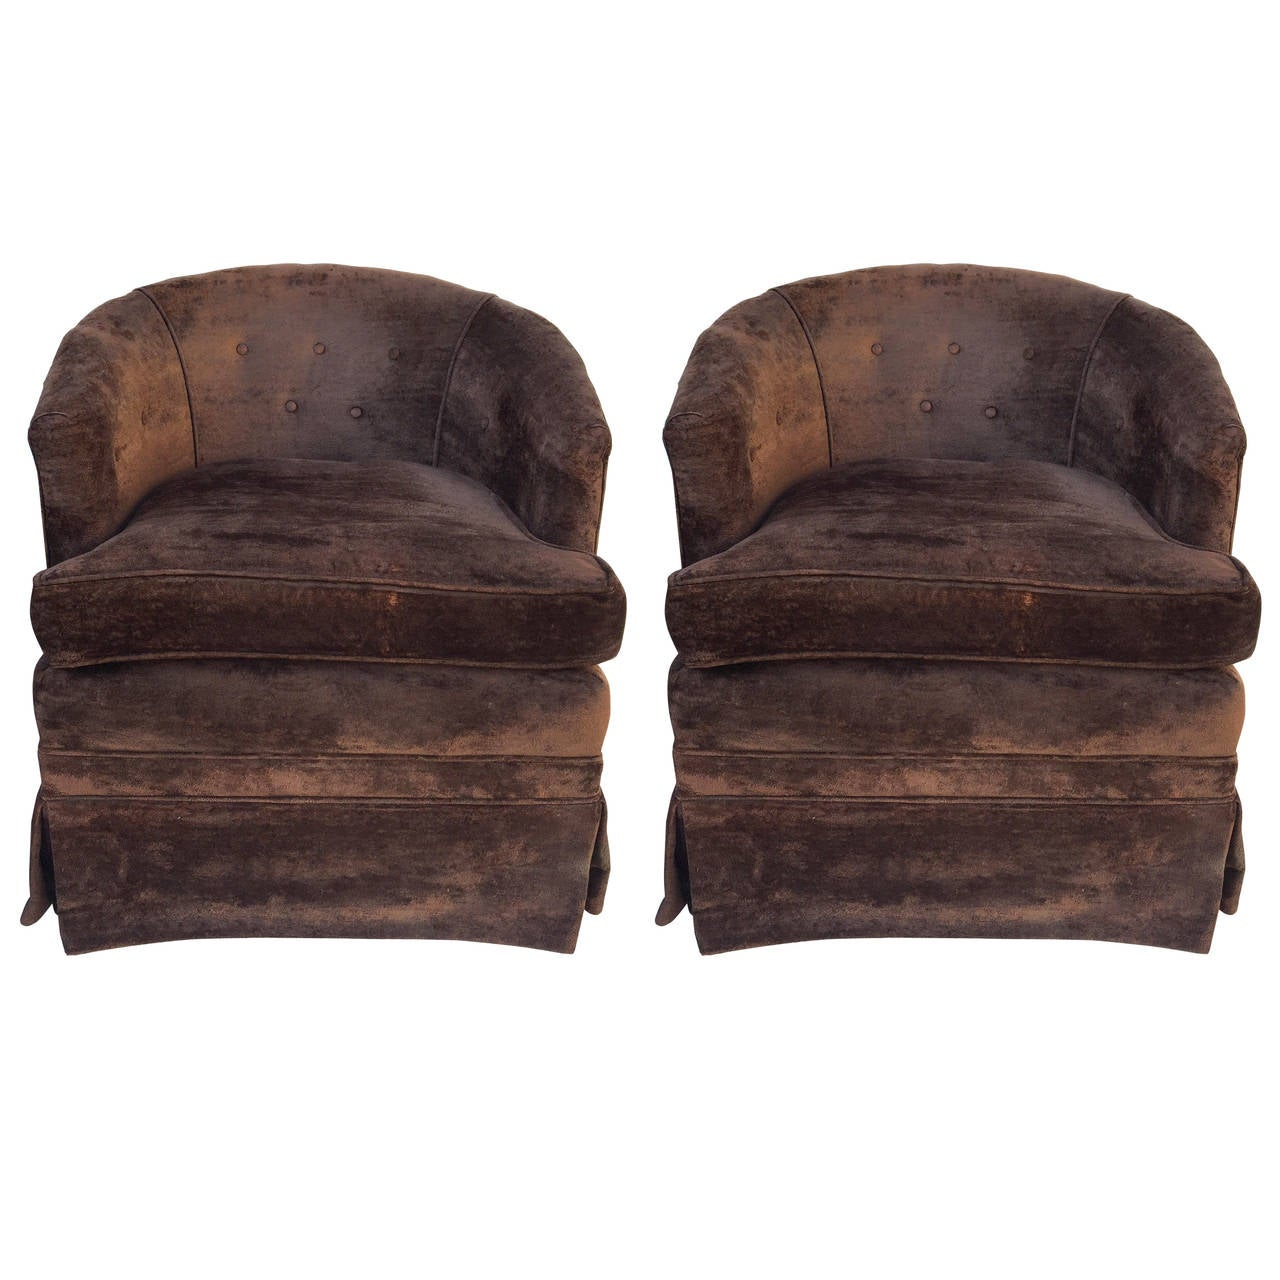 swivel chairs for sale royal baby shower chair pair of petit rocking barrel at 1stdibs